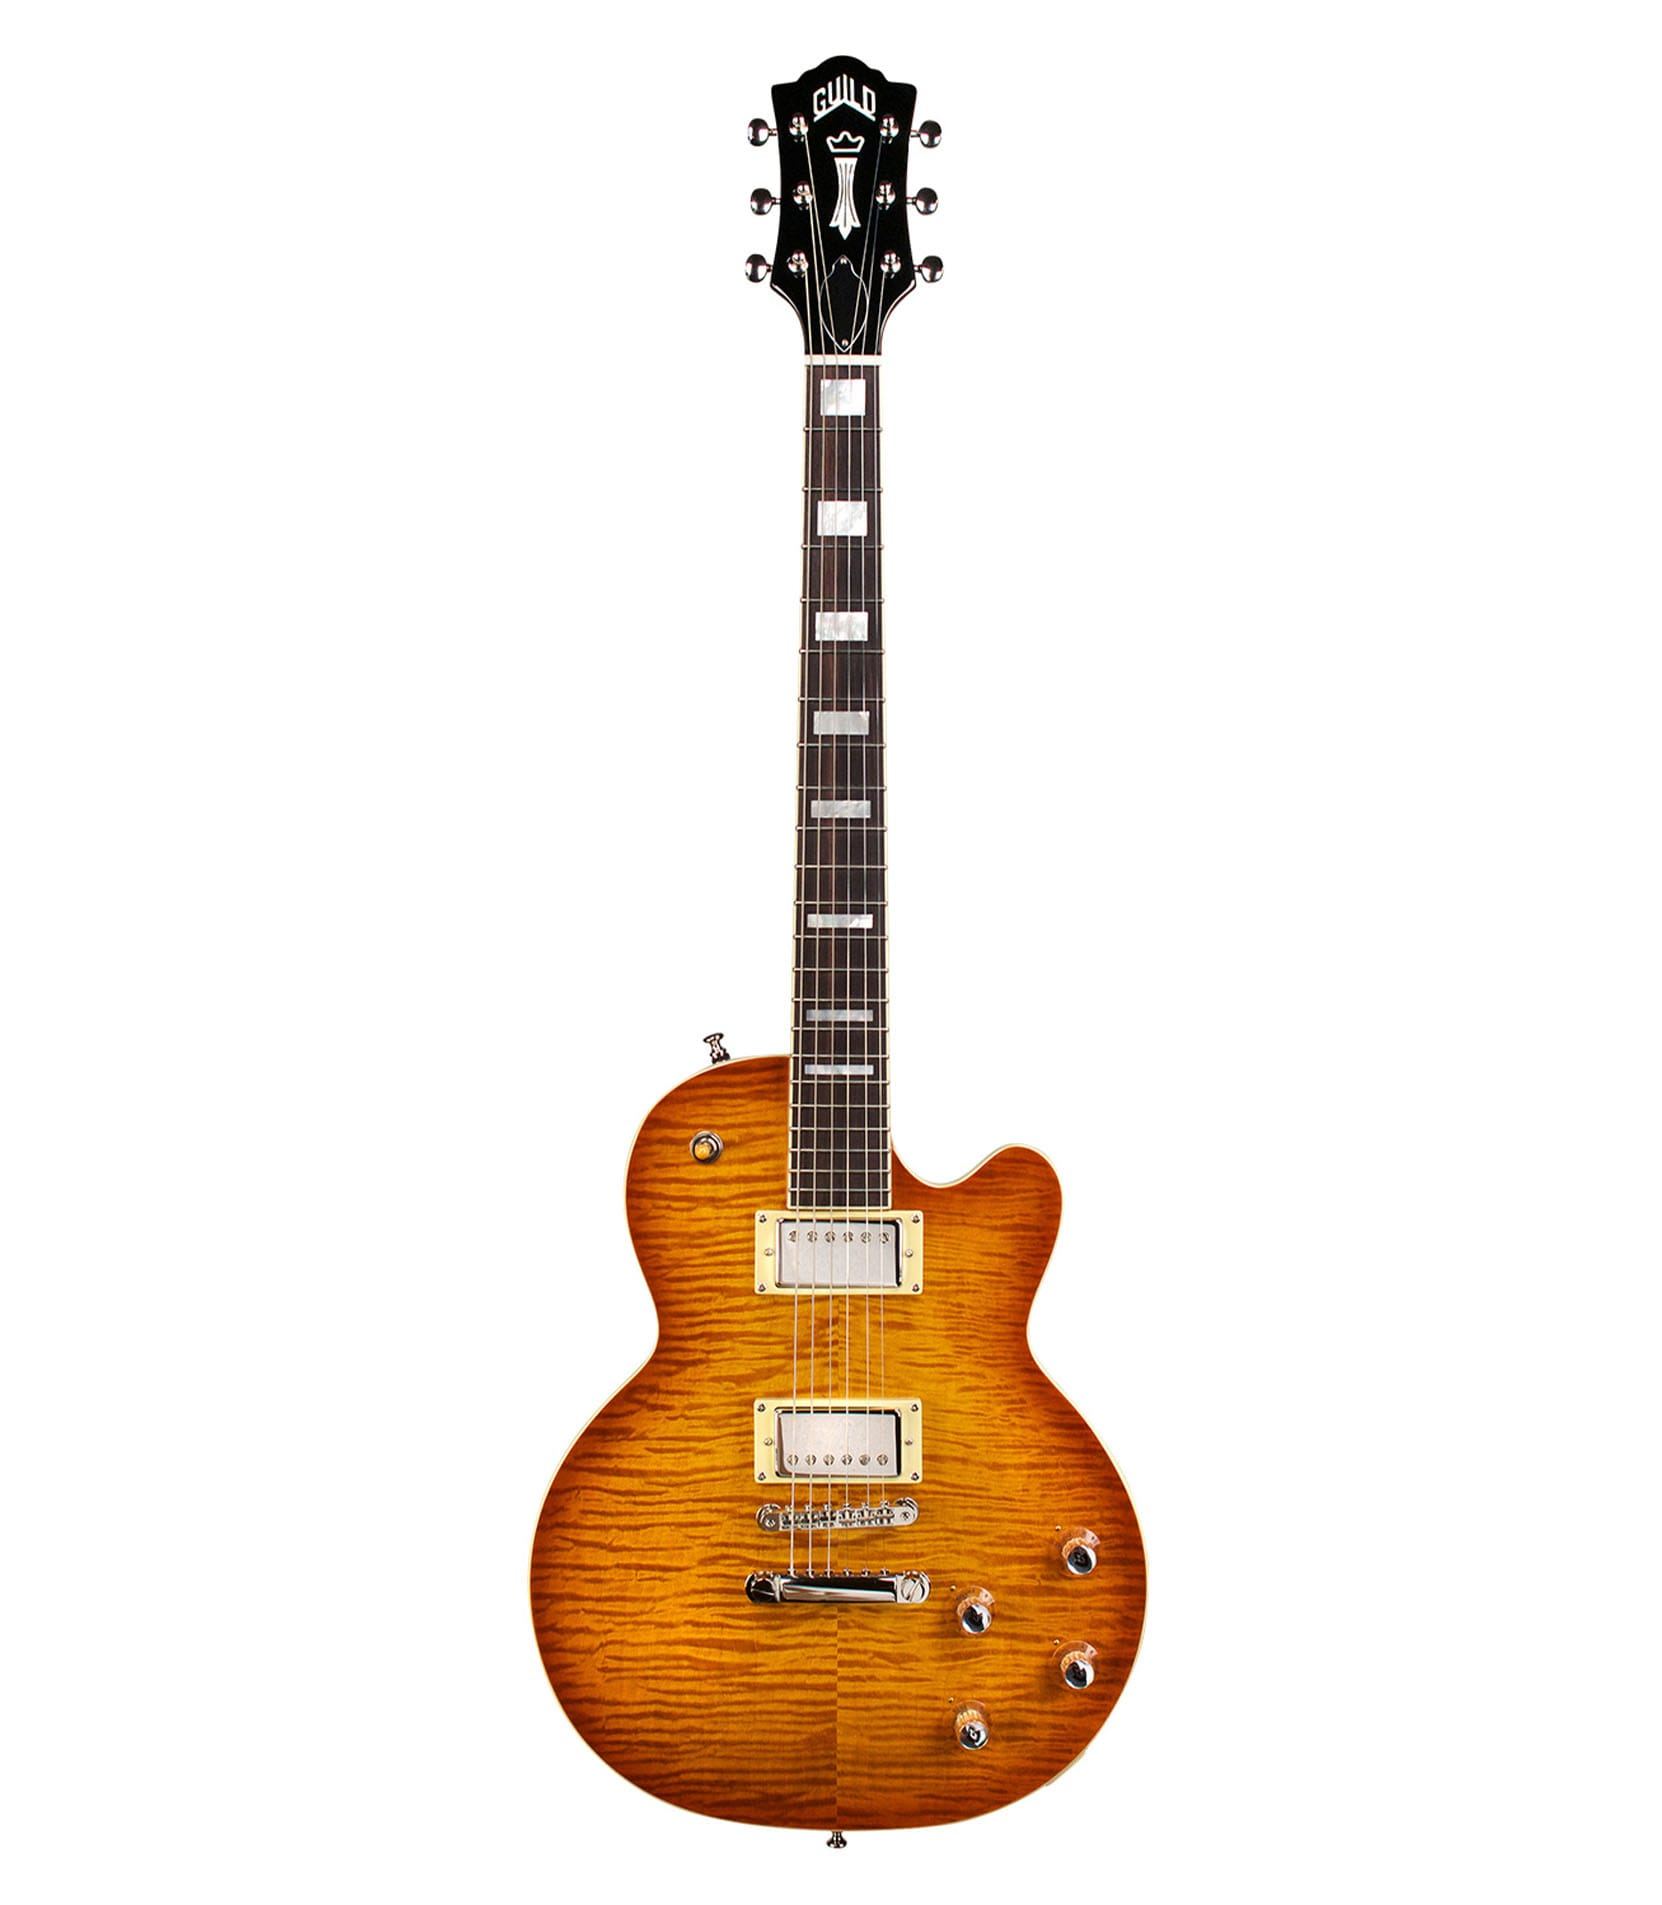 Guild - Bluesbird Guitar Iced Tea Burst Finish